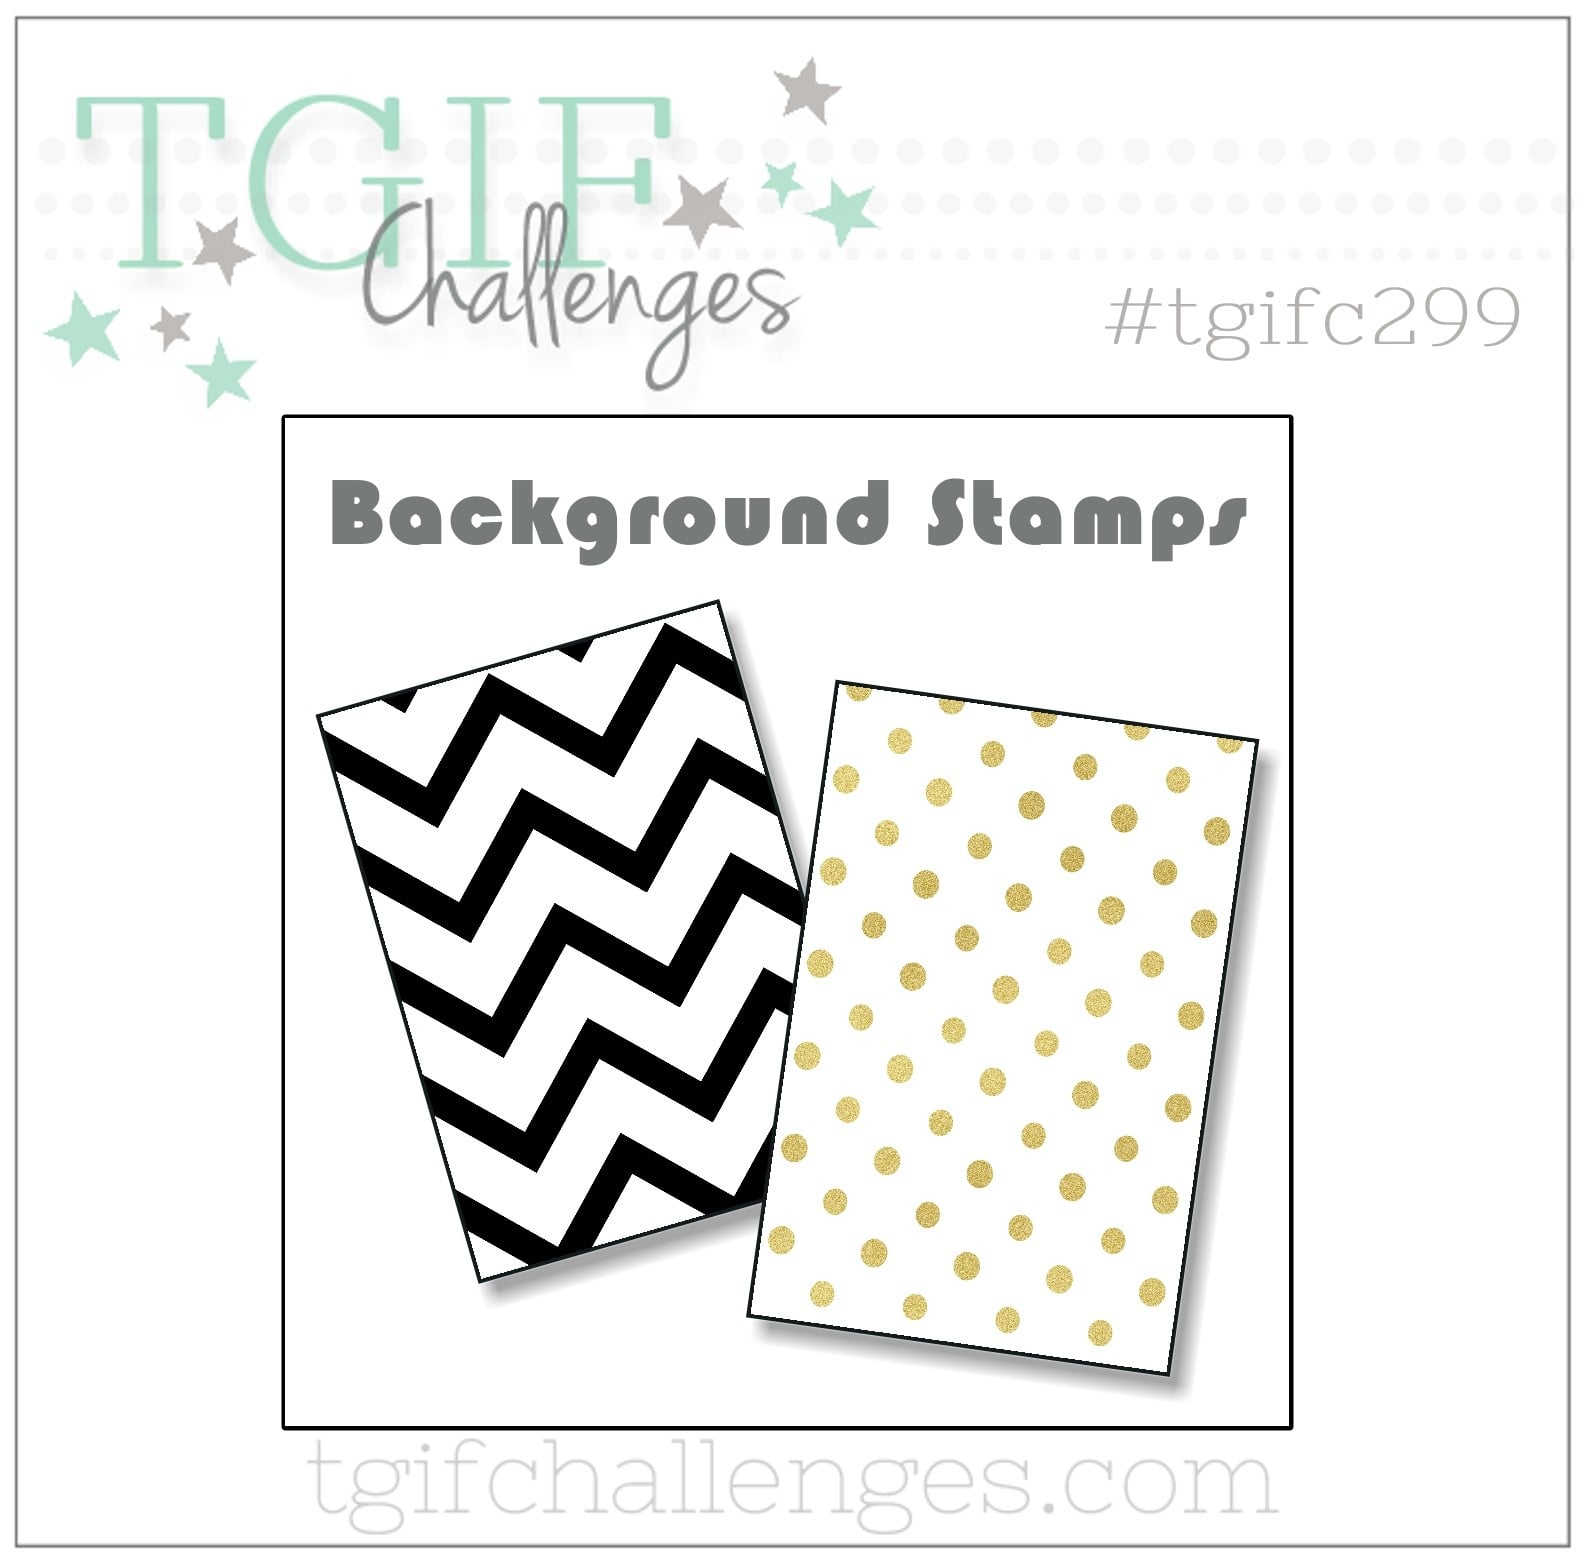 #tgifc299 Product Spotlight Challenge - Background Stamps